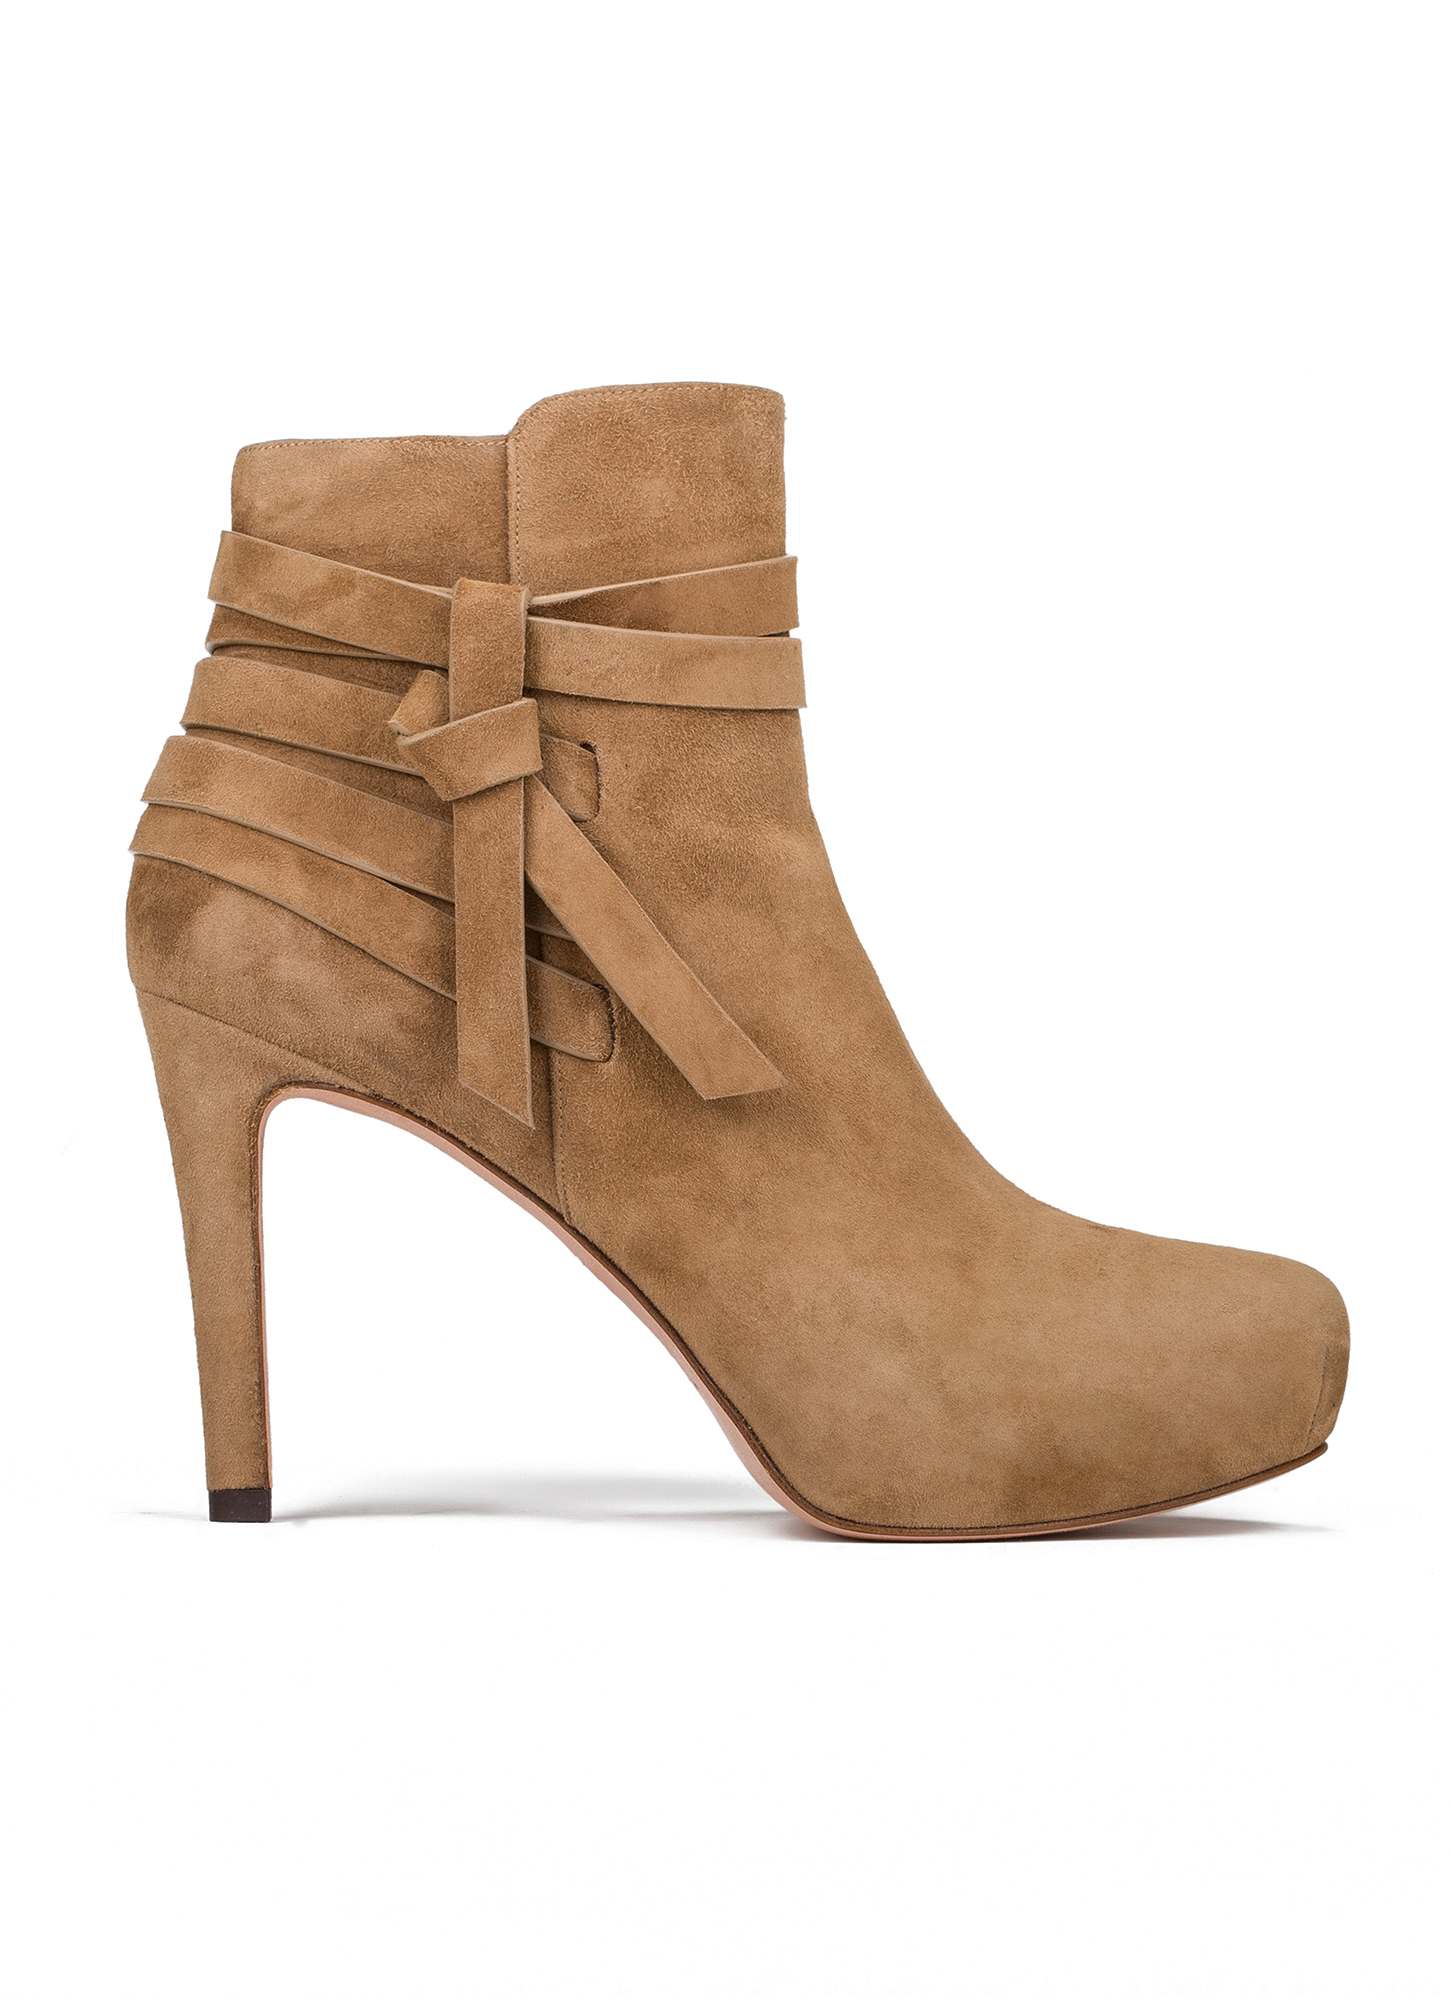 mid heel ankle boots in camel suede shoe store